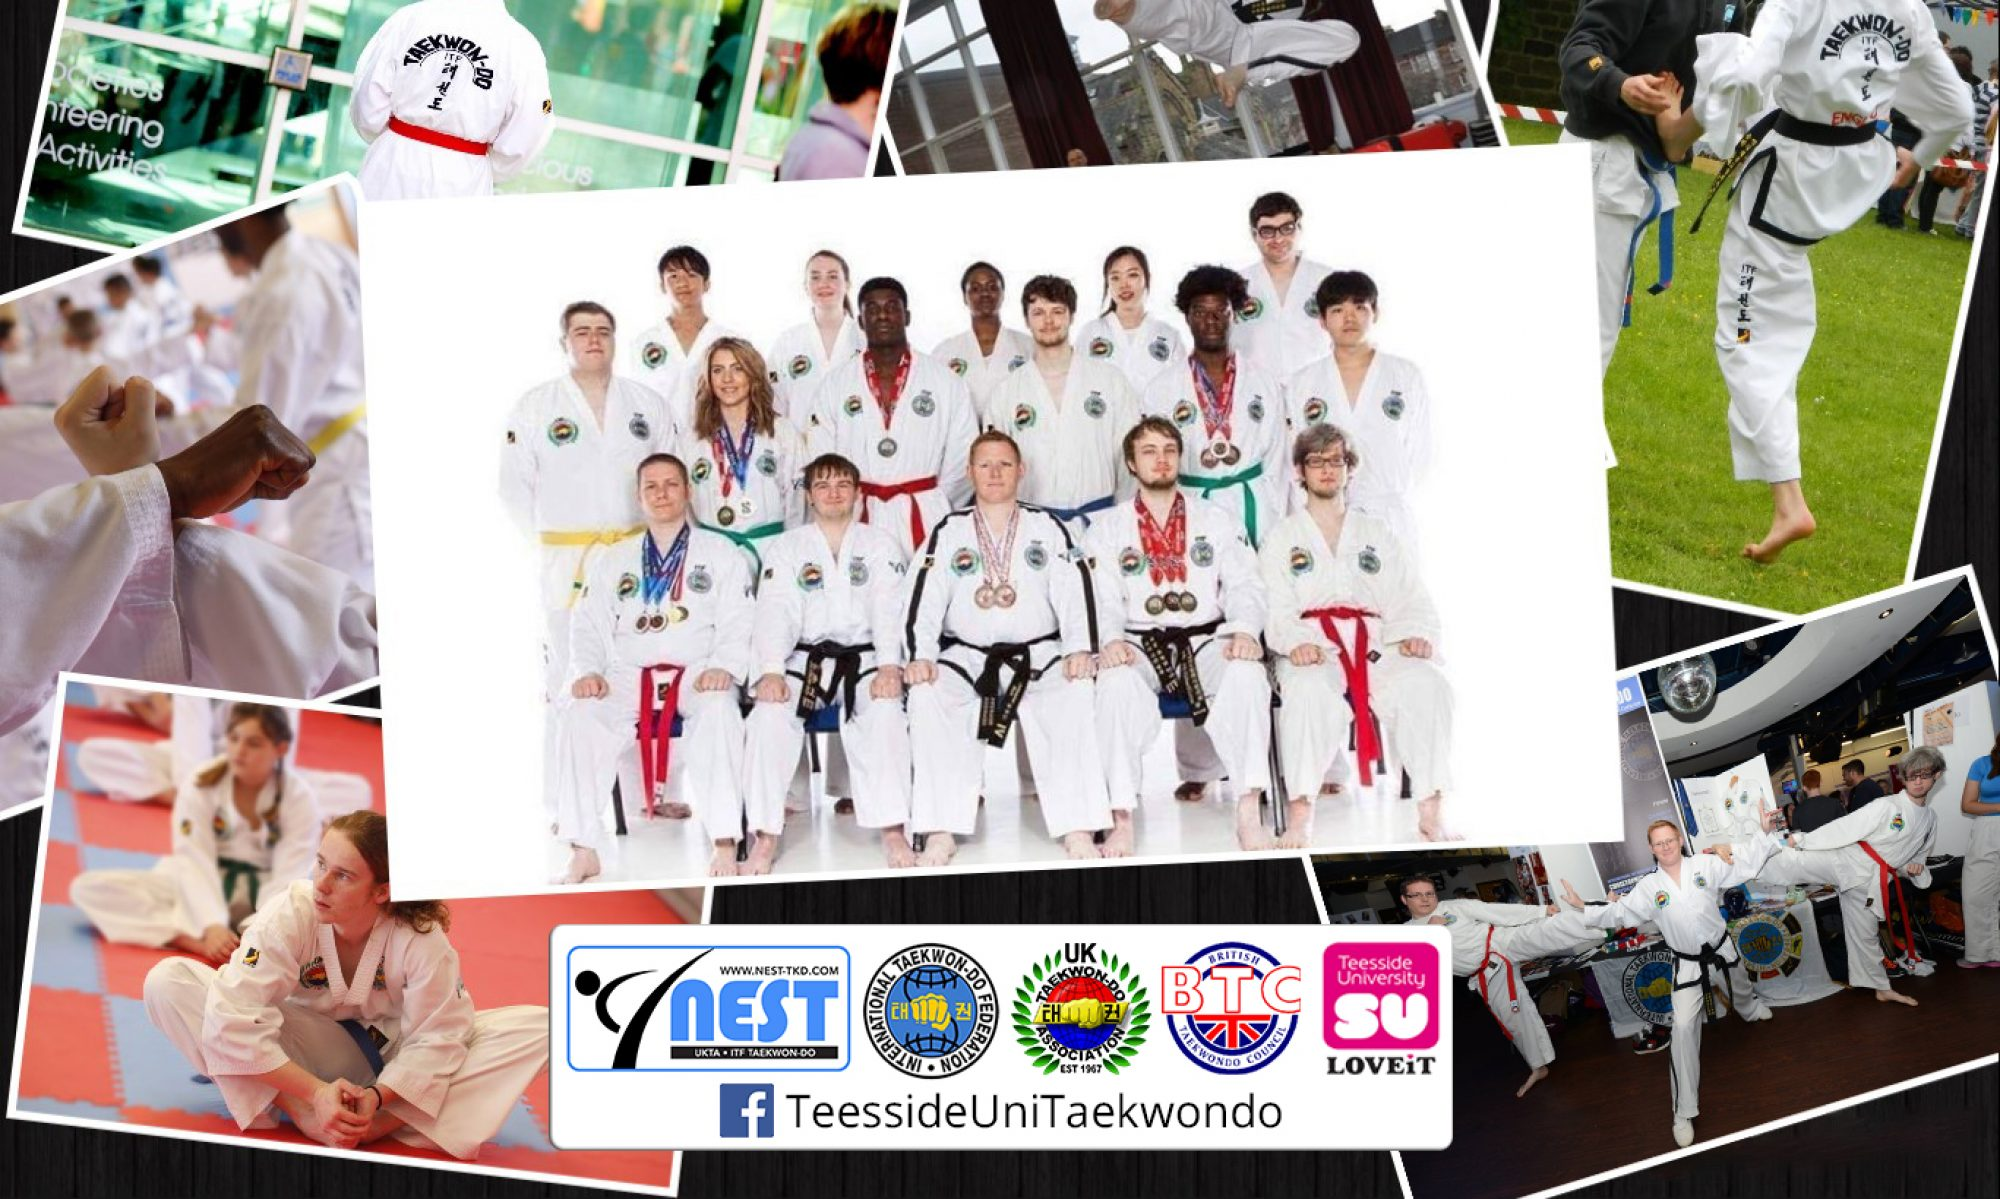 Teesside University Taekwon-do